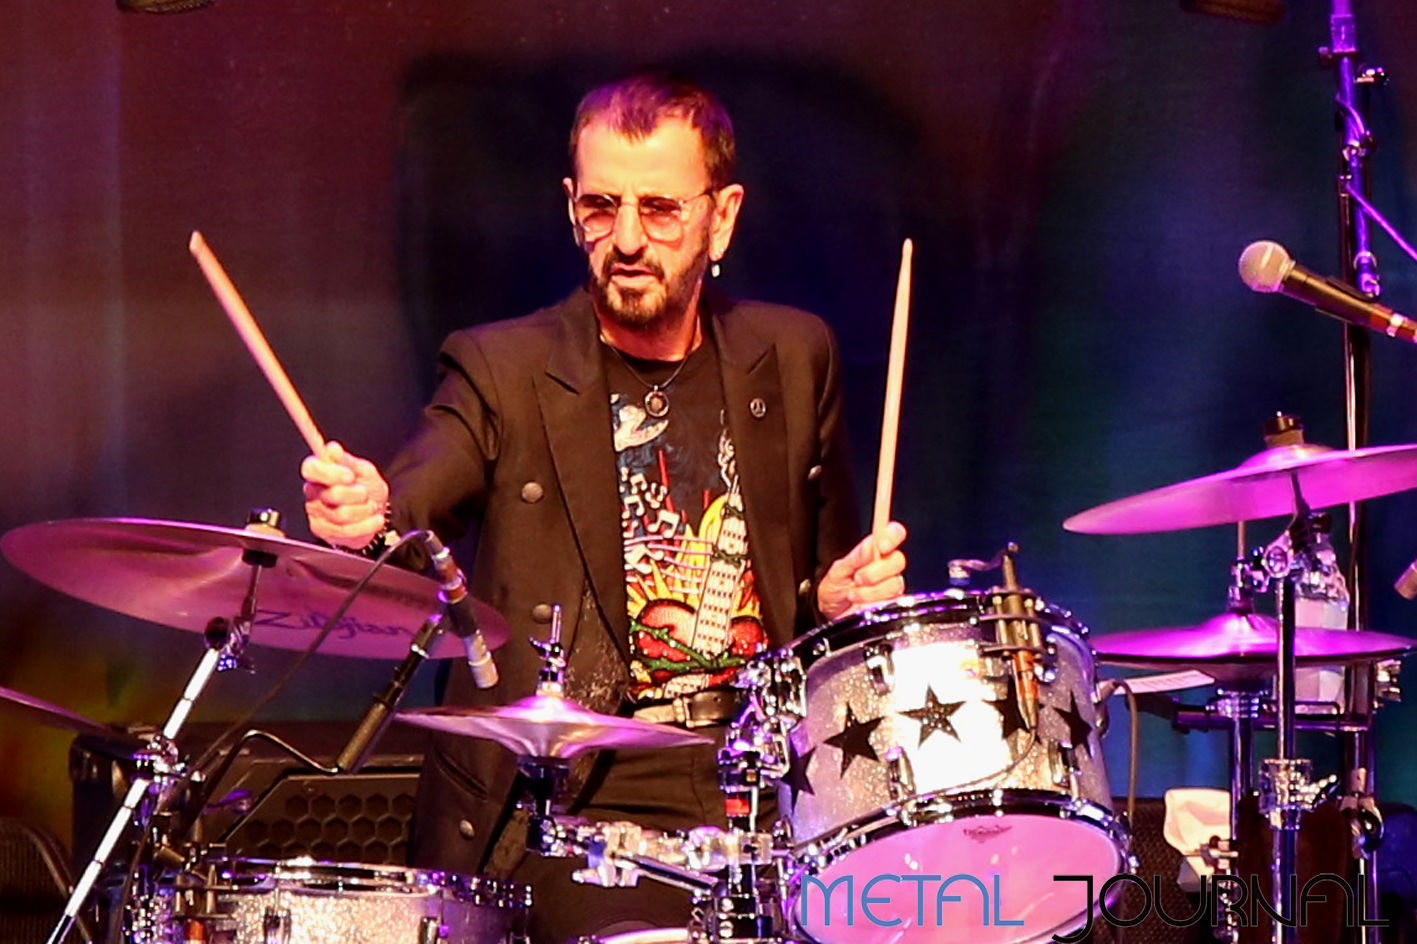 ringo starr - metal journal 2018 pic 4